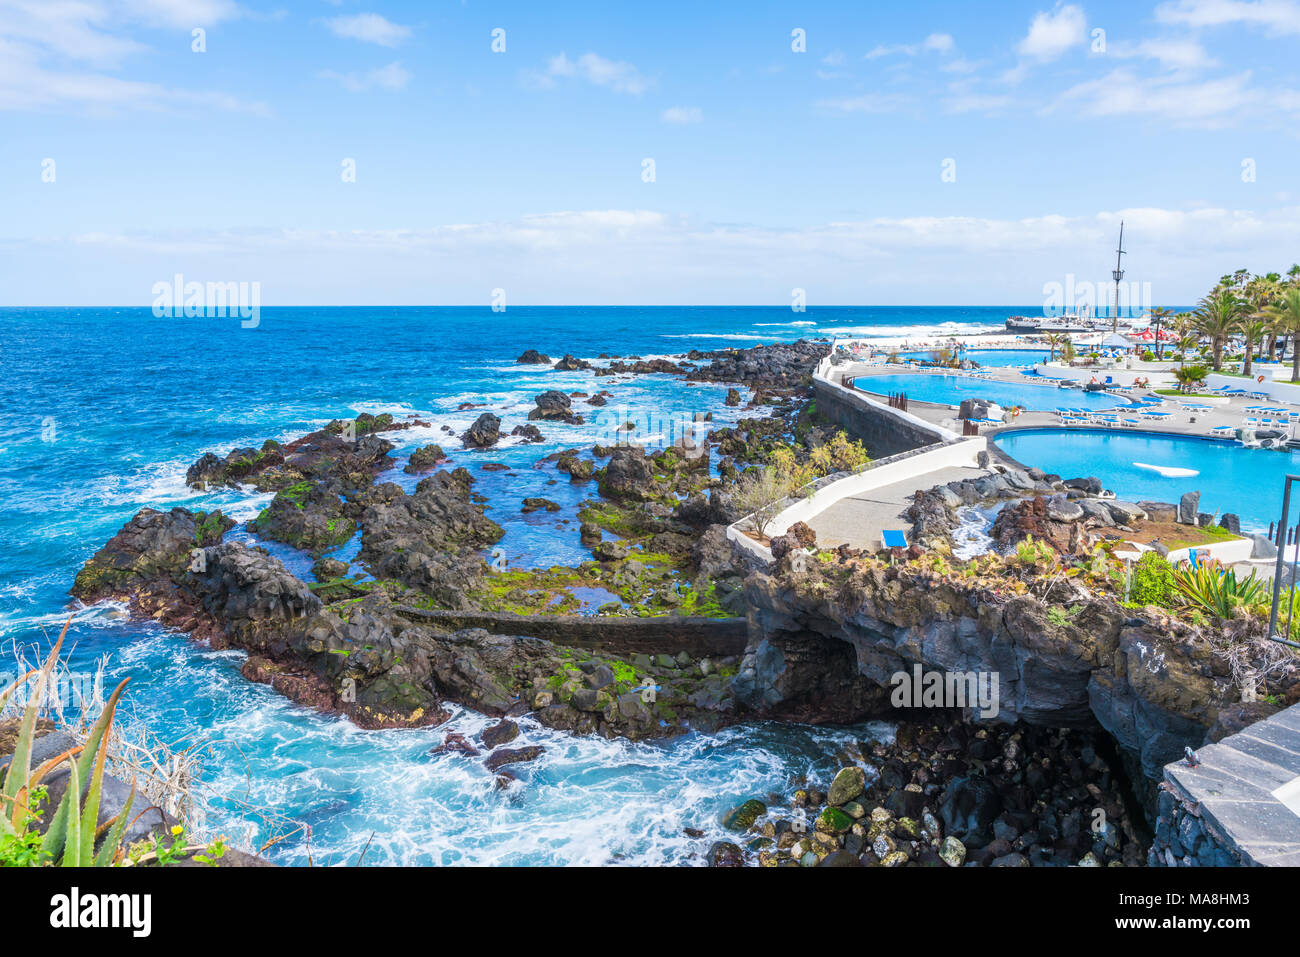 Santa cruz del lago stock photos santa cruz del lago - Piscine martianez tenerife ...